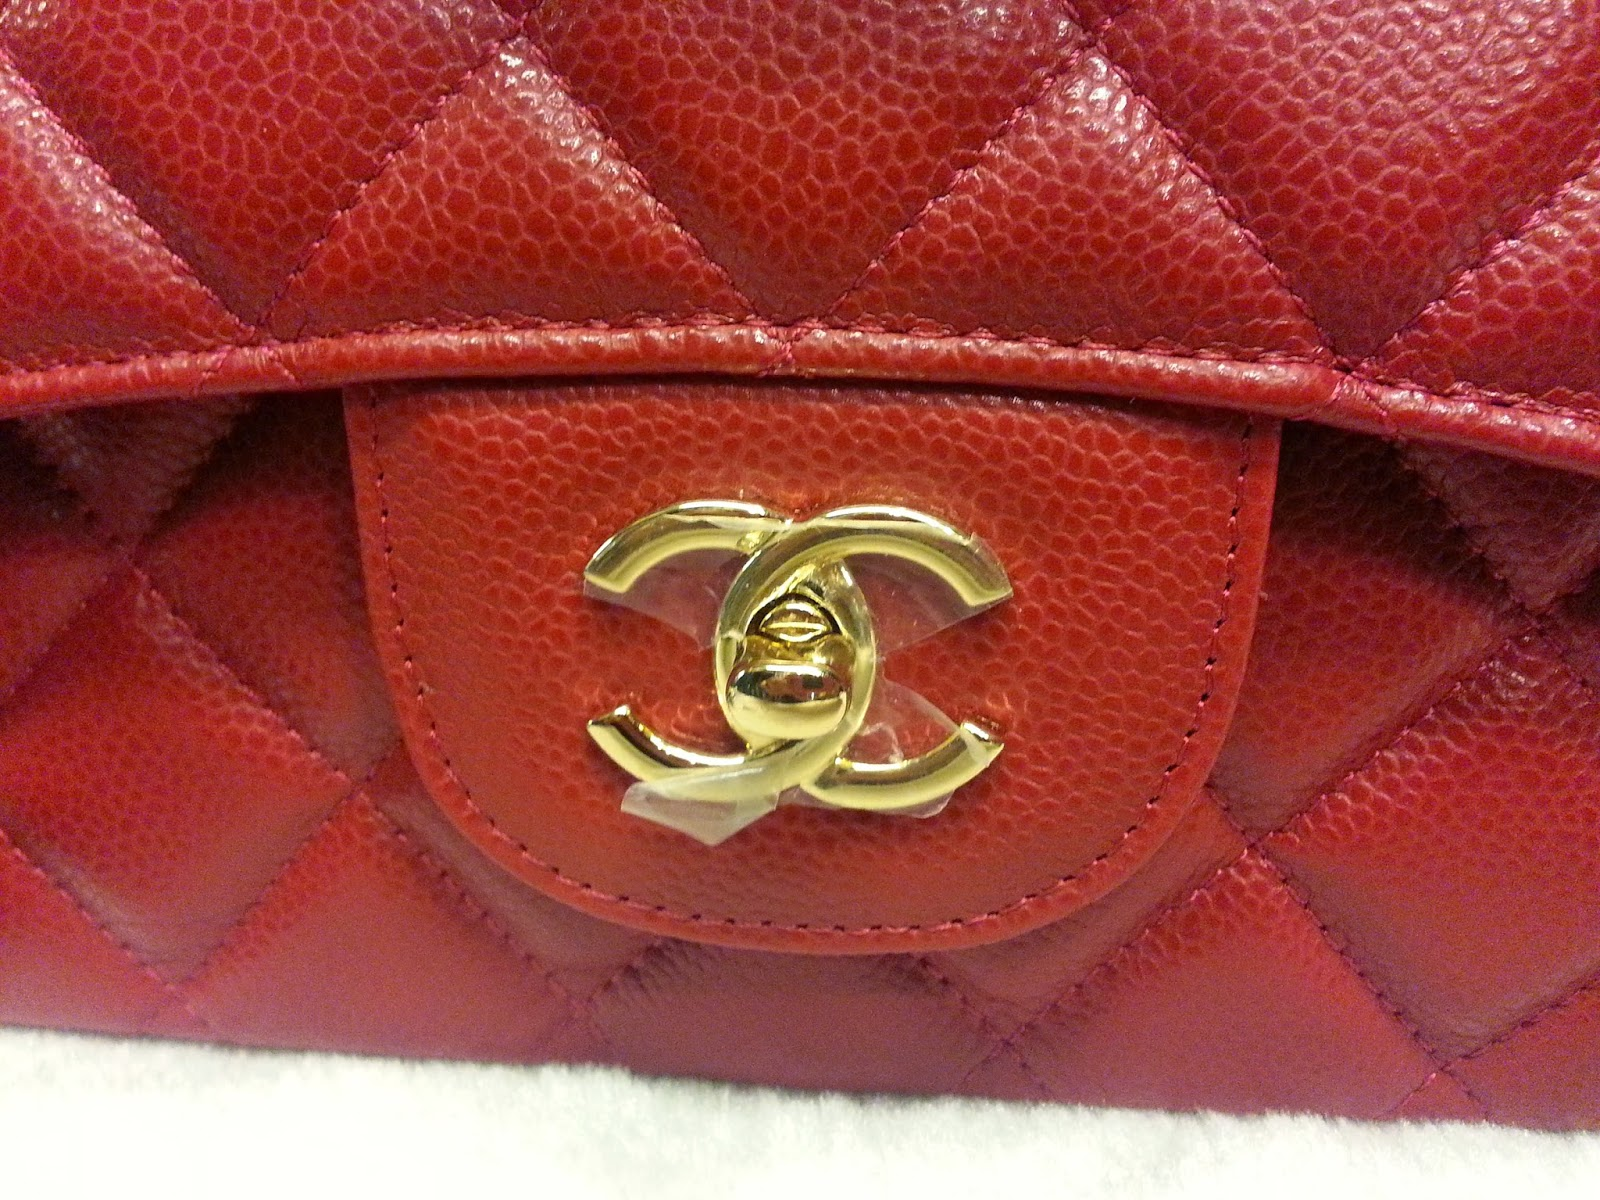 71a6177760cb Deal Treasure: Chanel Classic Jumbo Red Caviar Leather Double Flap ...